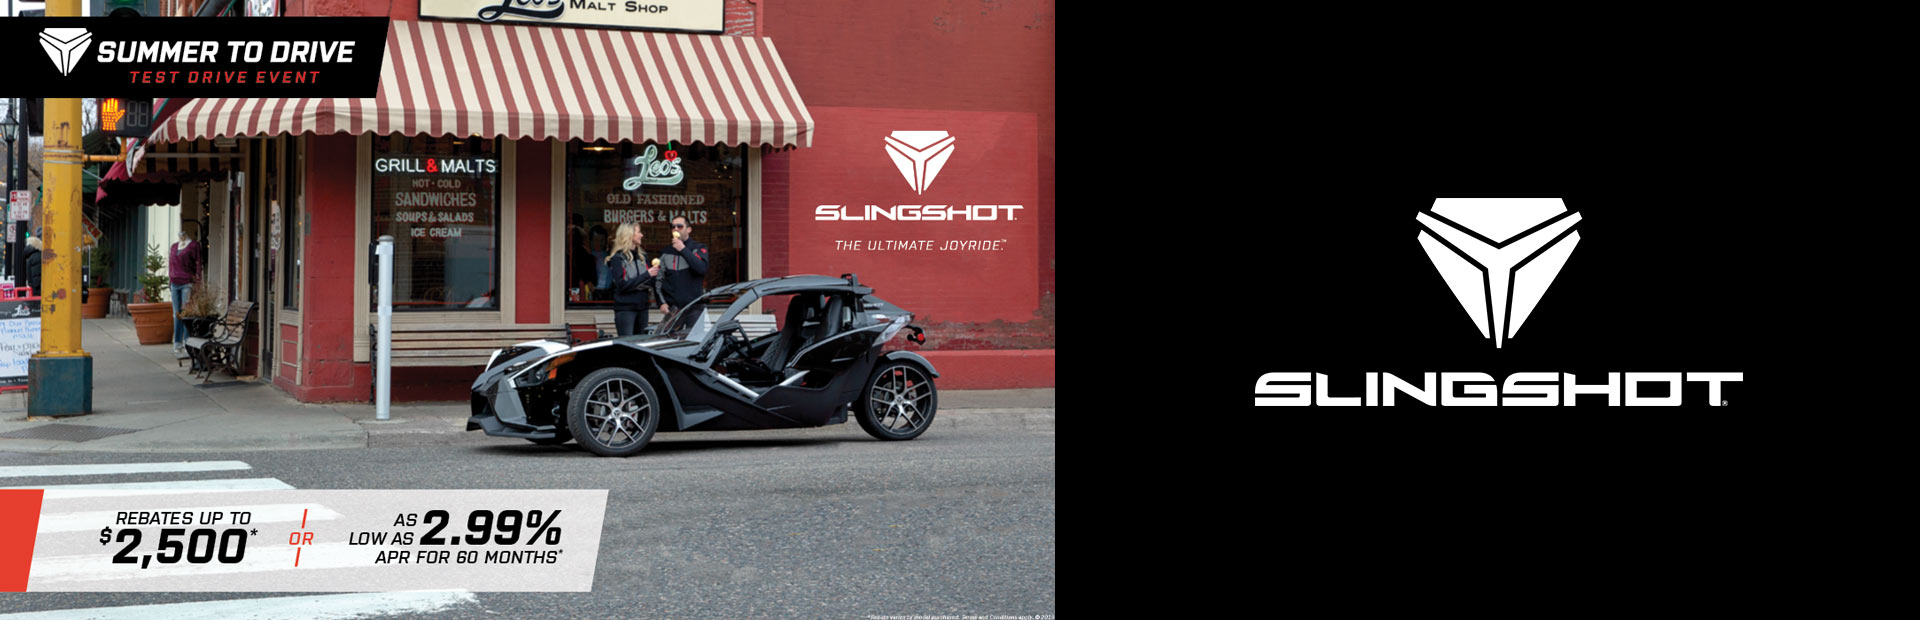 Slingshot: Summer to Drive Test Drive Event